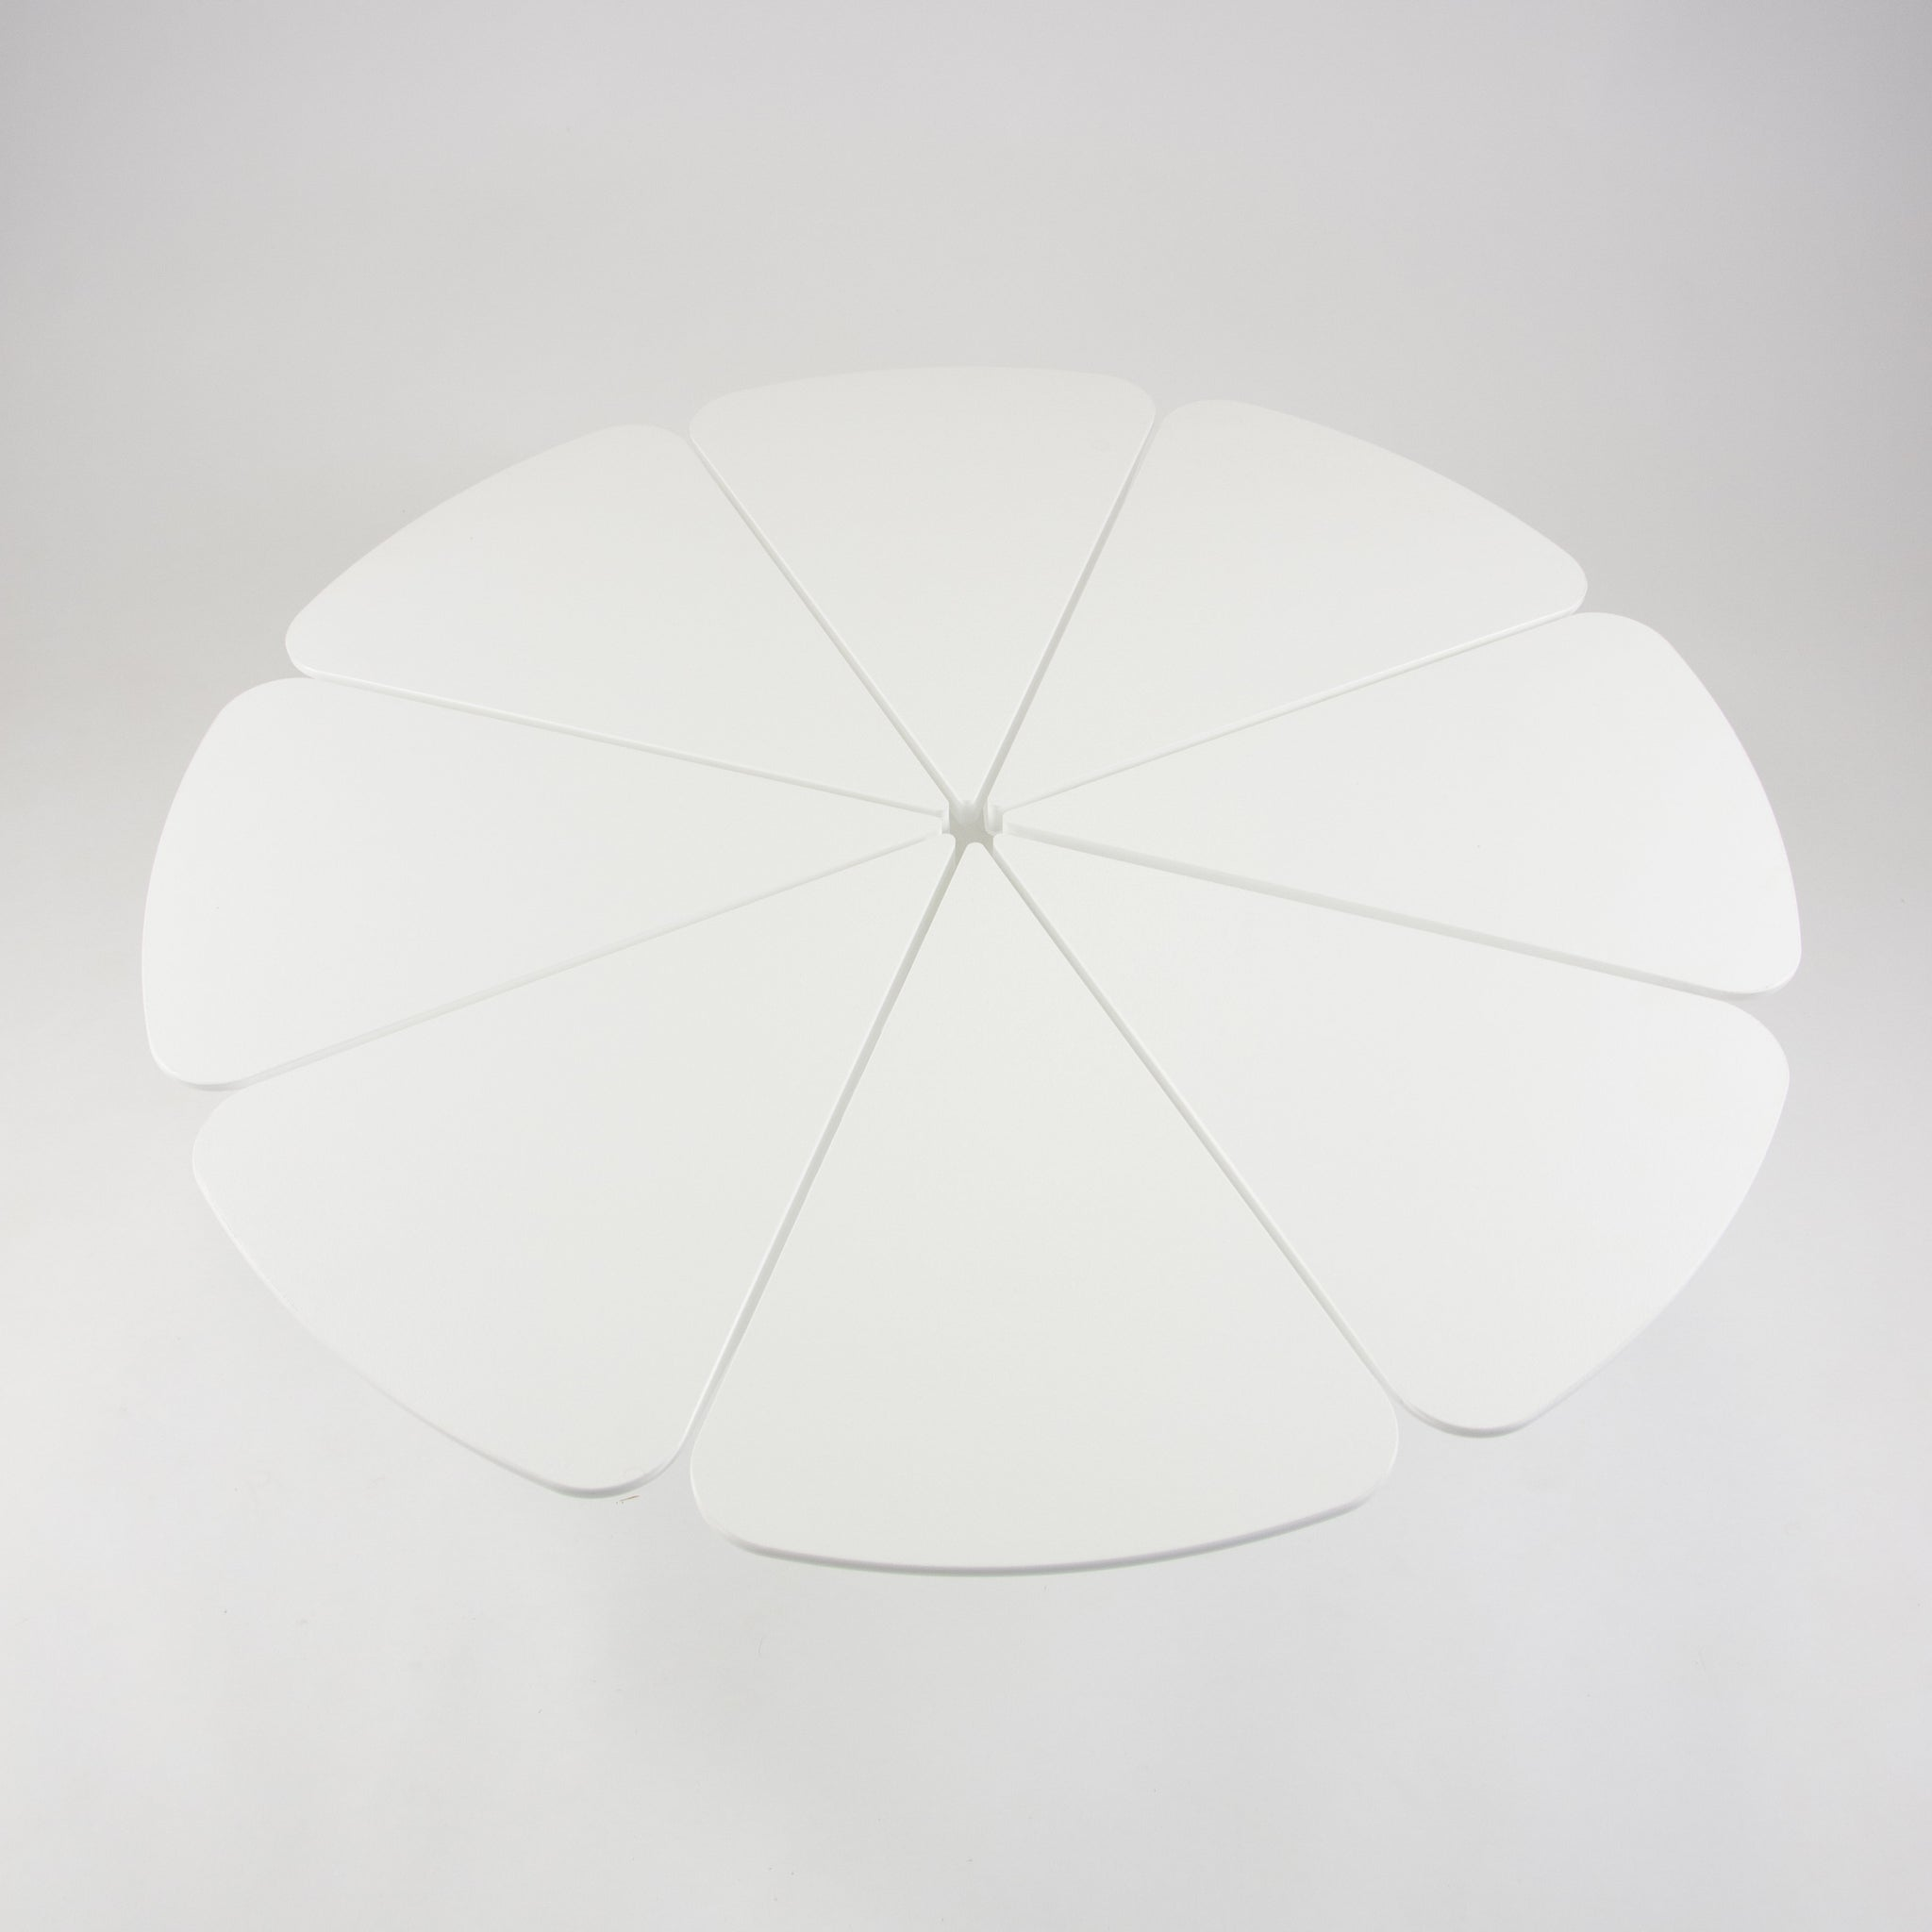 SOLD Richard Schultz Knoll Petal Coffee Table White High Density Polyurethane